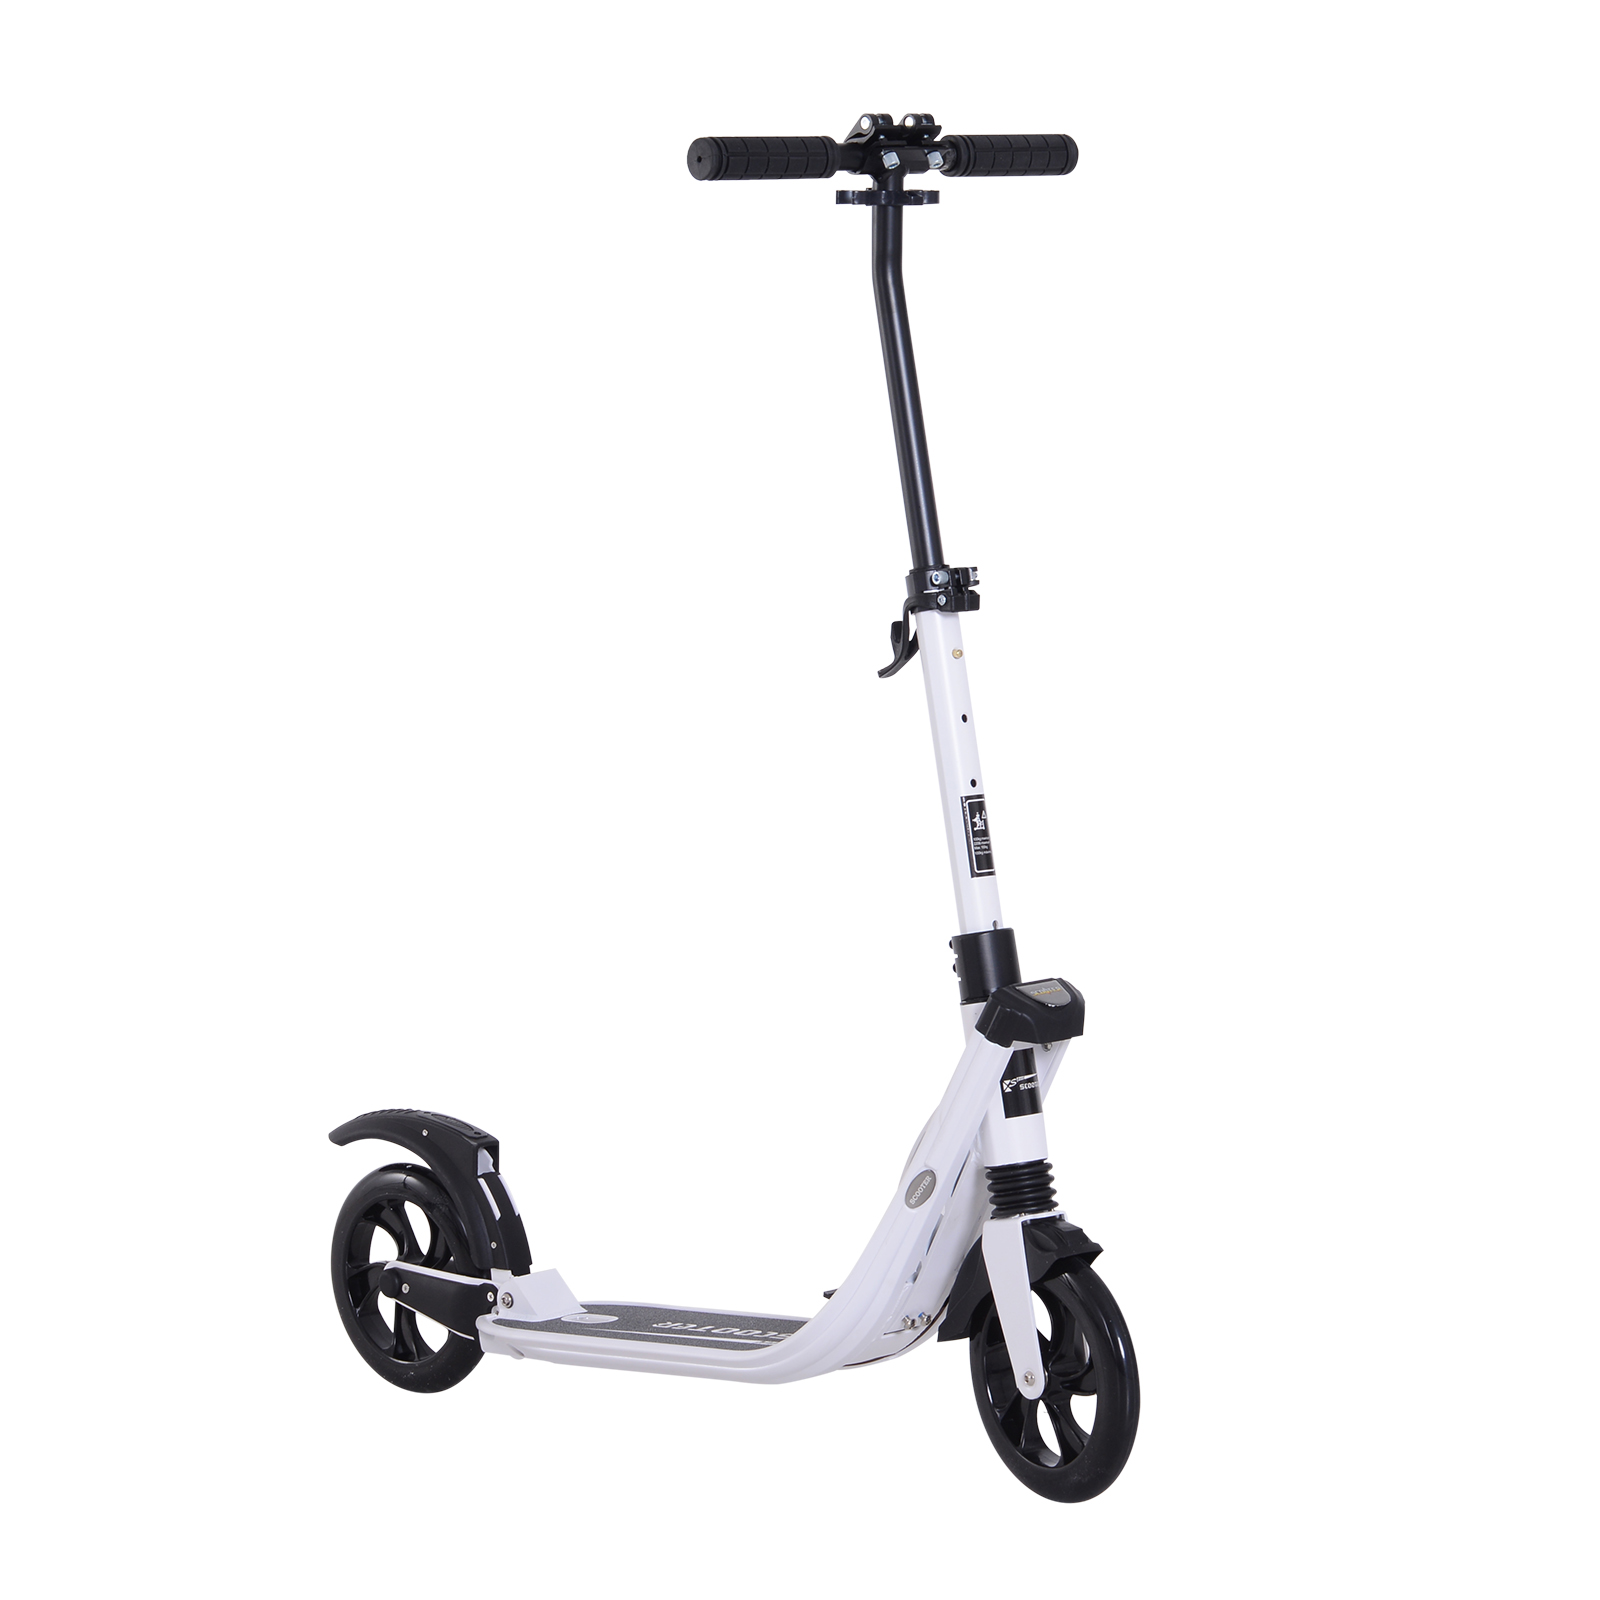 Teens-Adult-Folding-Electric-Scooter-Teenager-Rider-With-Brakes-and-Kickstand miniature 28